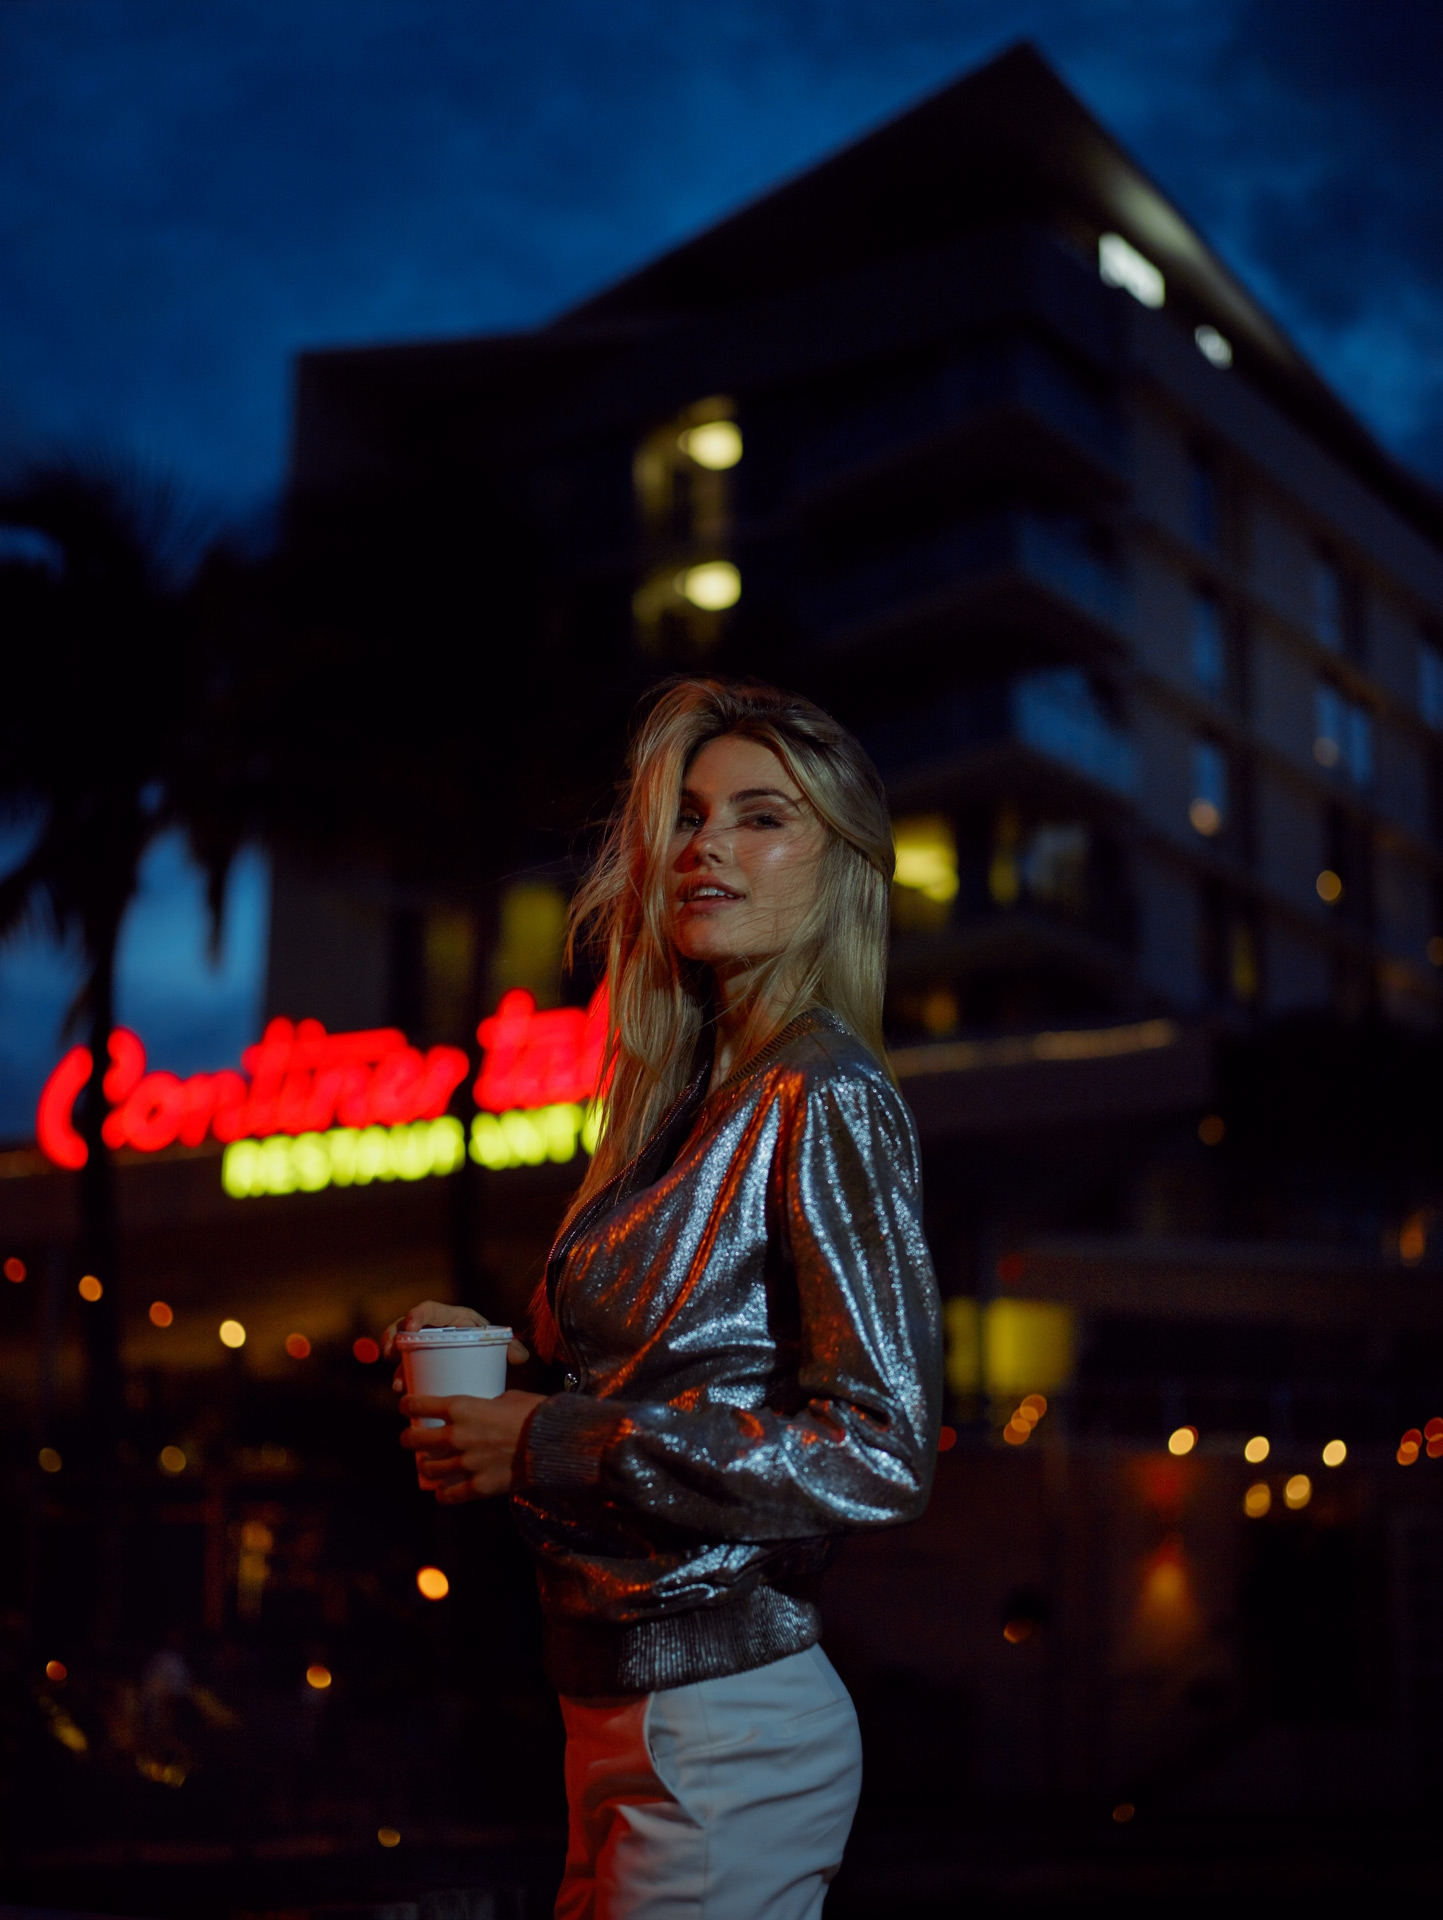 miami vaeda motel hotel continental american palm wild lifestyle the kooples maje frederic mercier photographer one color